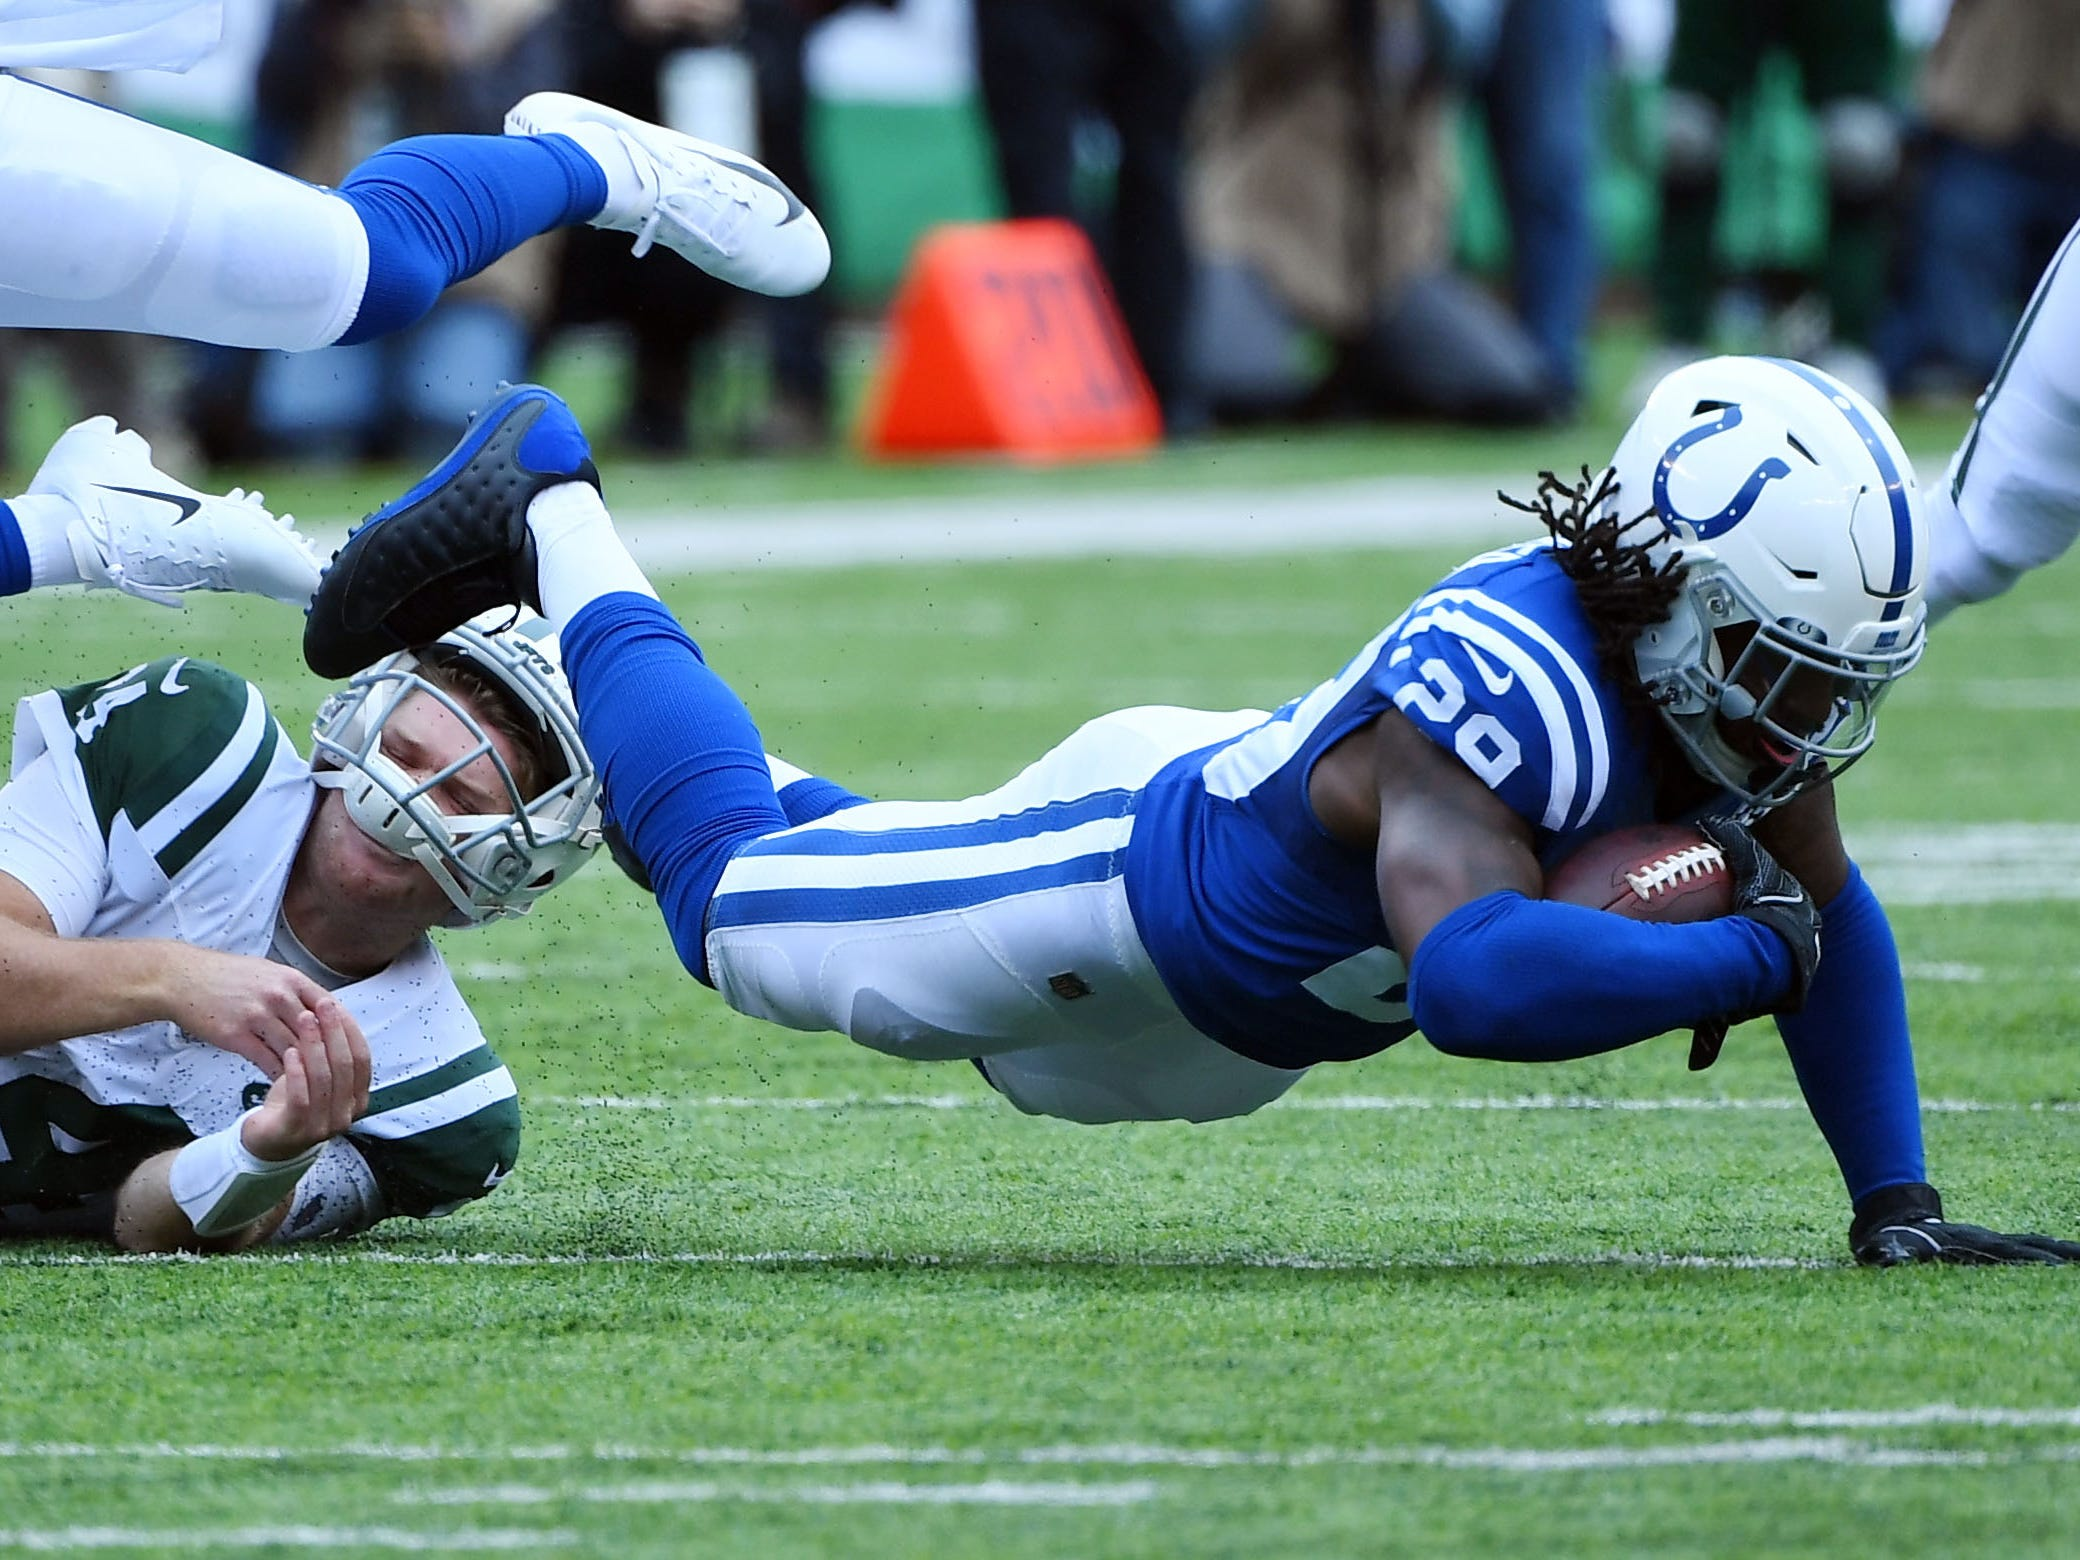 Indianapolis Colts safety Malik Hooker (29) is tackled by New York Jets quarterback Sam Darnold (14) after an interception in the second quarter at MetLife Stadium.